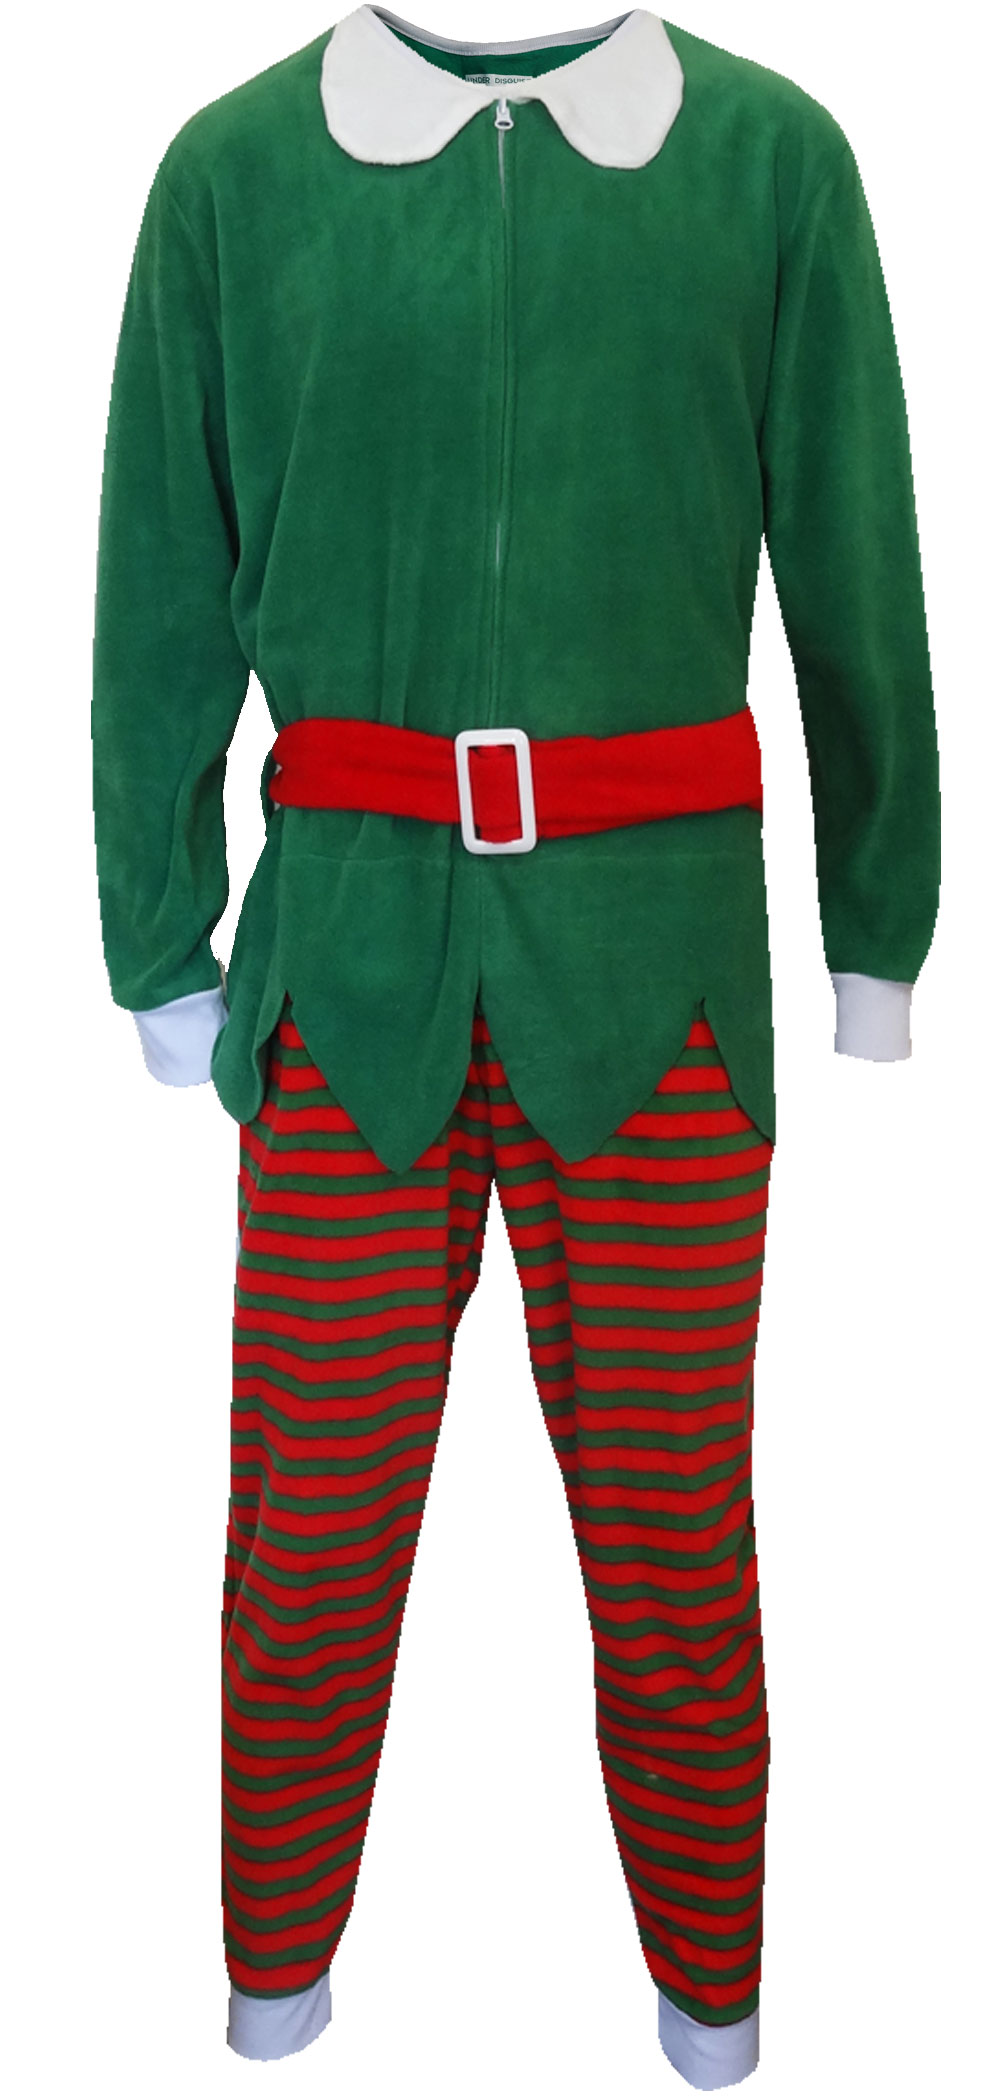 Red And Green Christmas Elf One Piece Pajama - Walmart.com